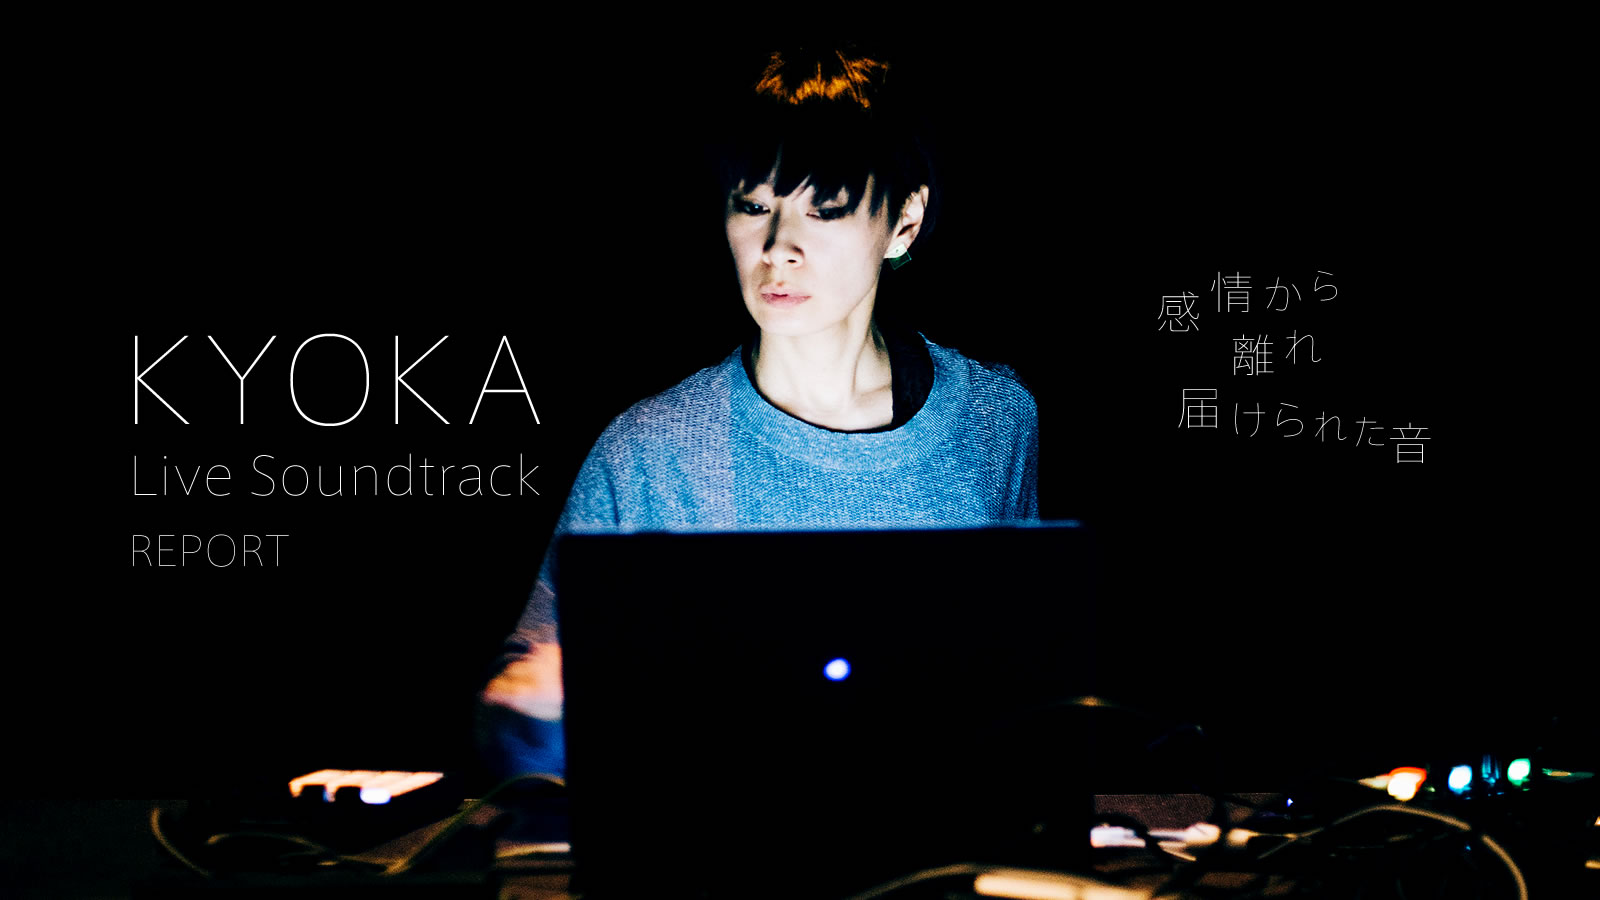 Kyoka - Live Soundtrack